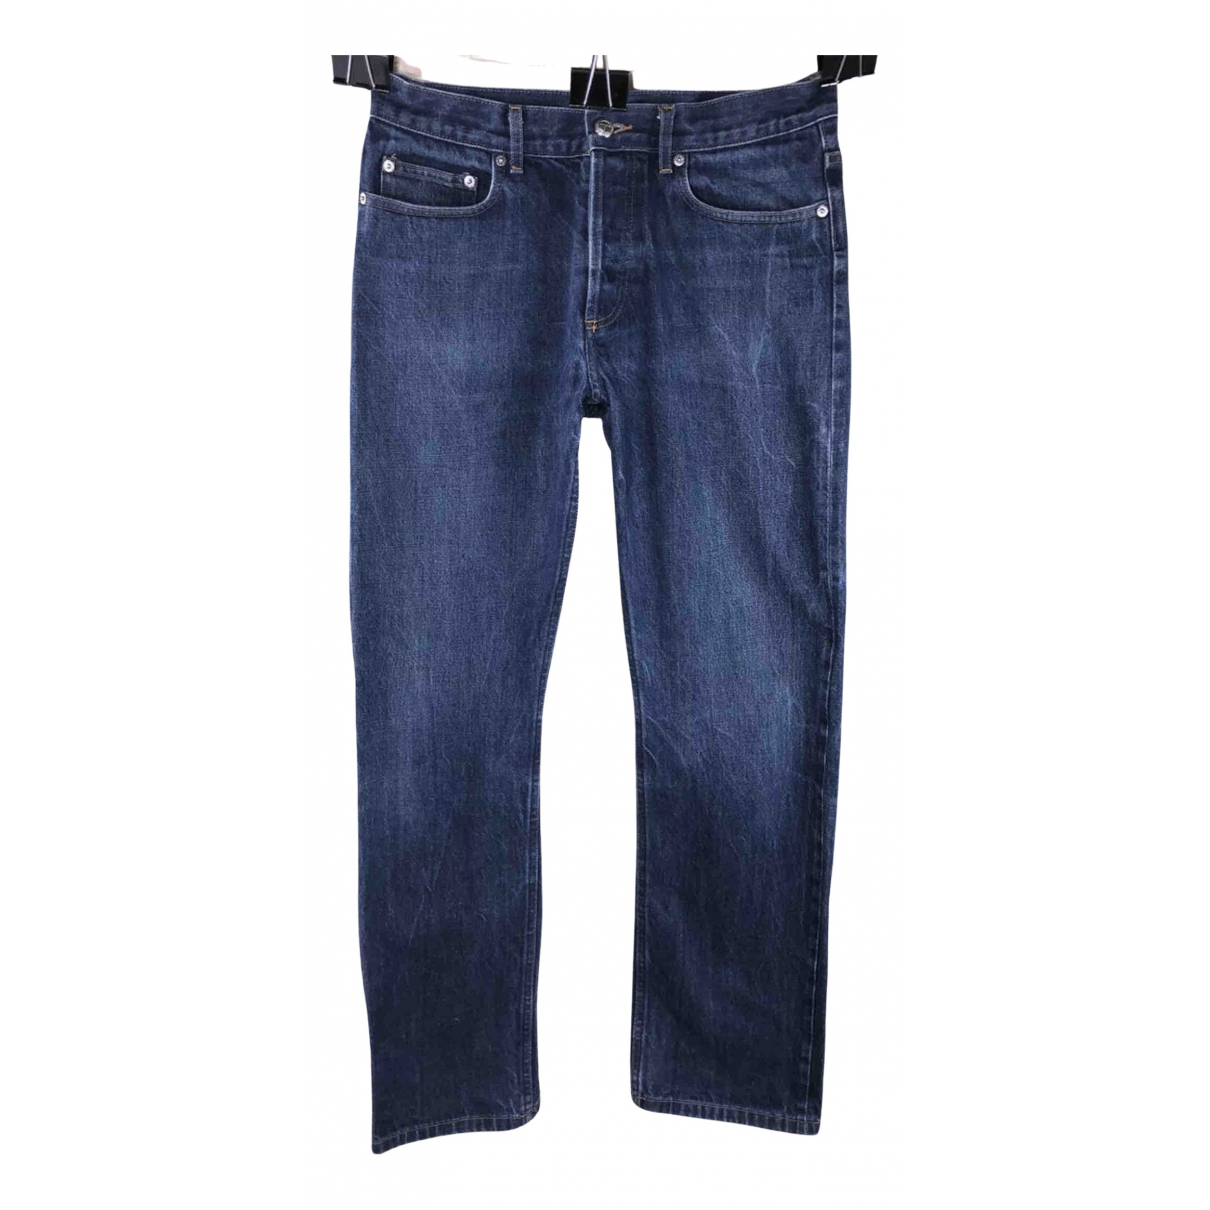 Apc N Blue Cotton Jeans for Men 32 US